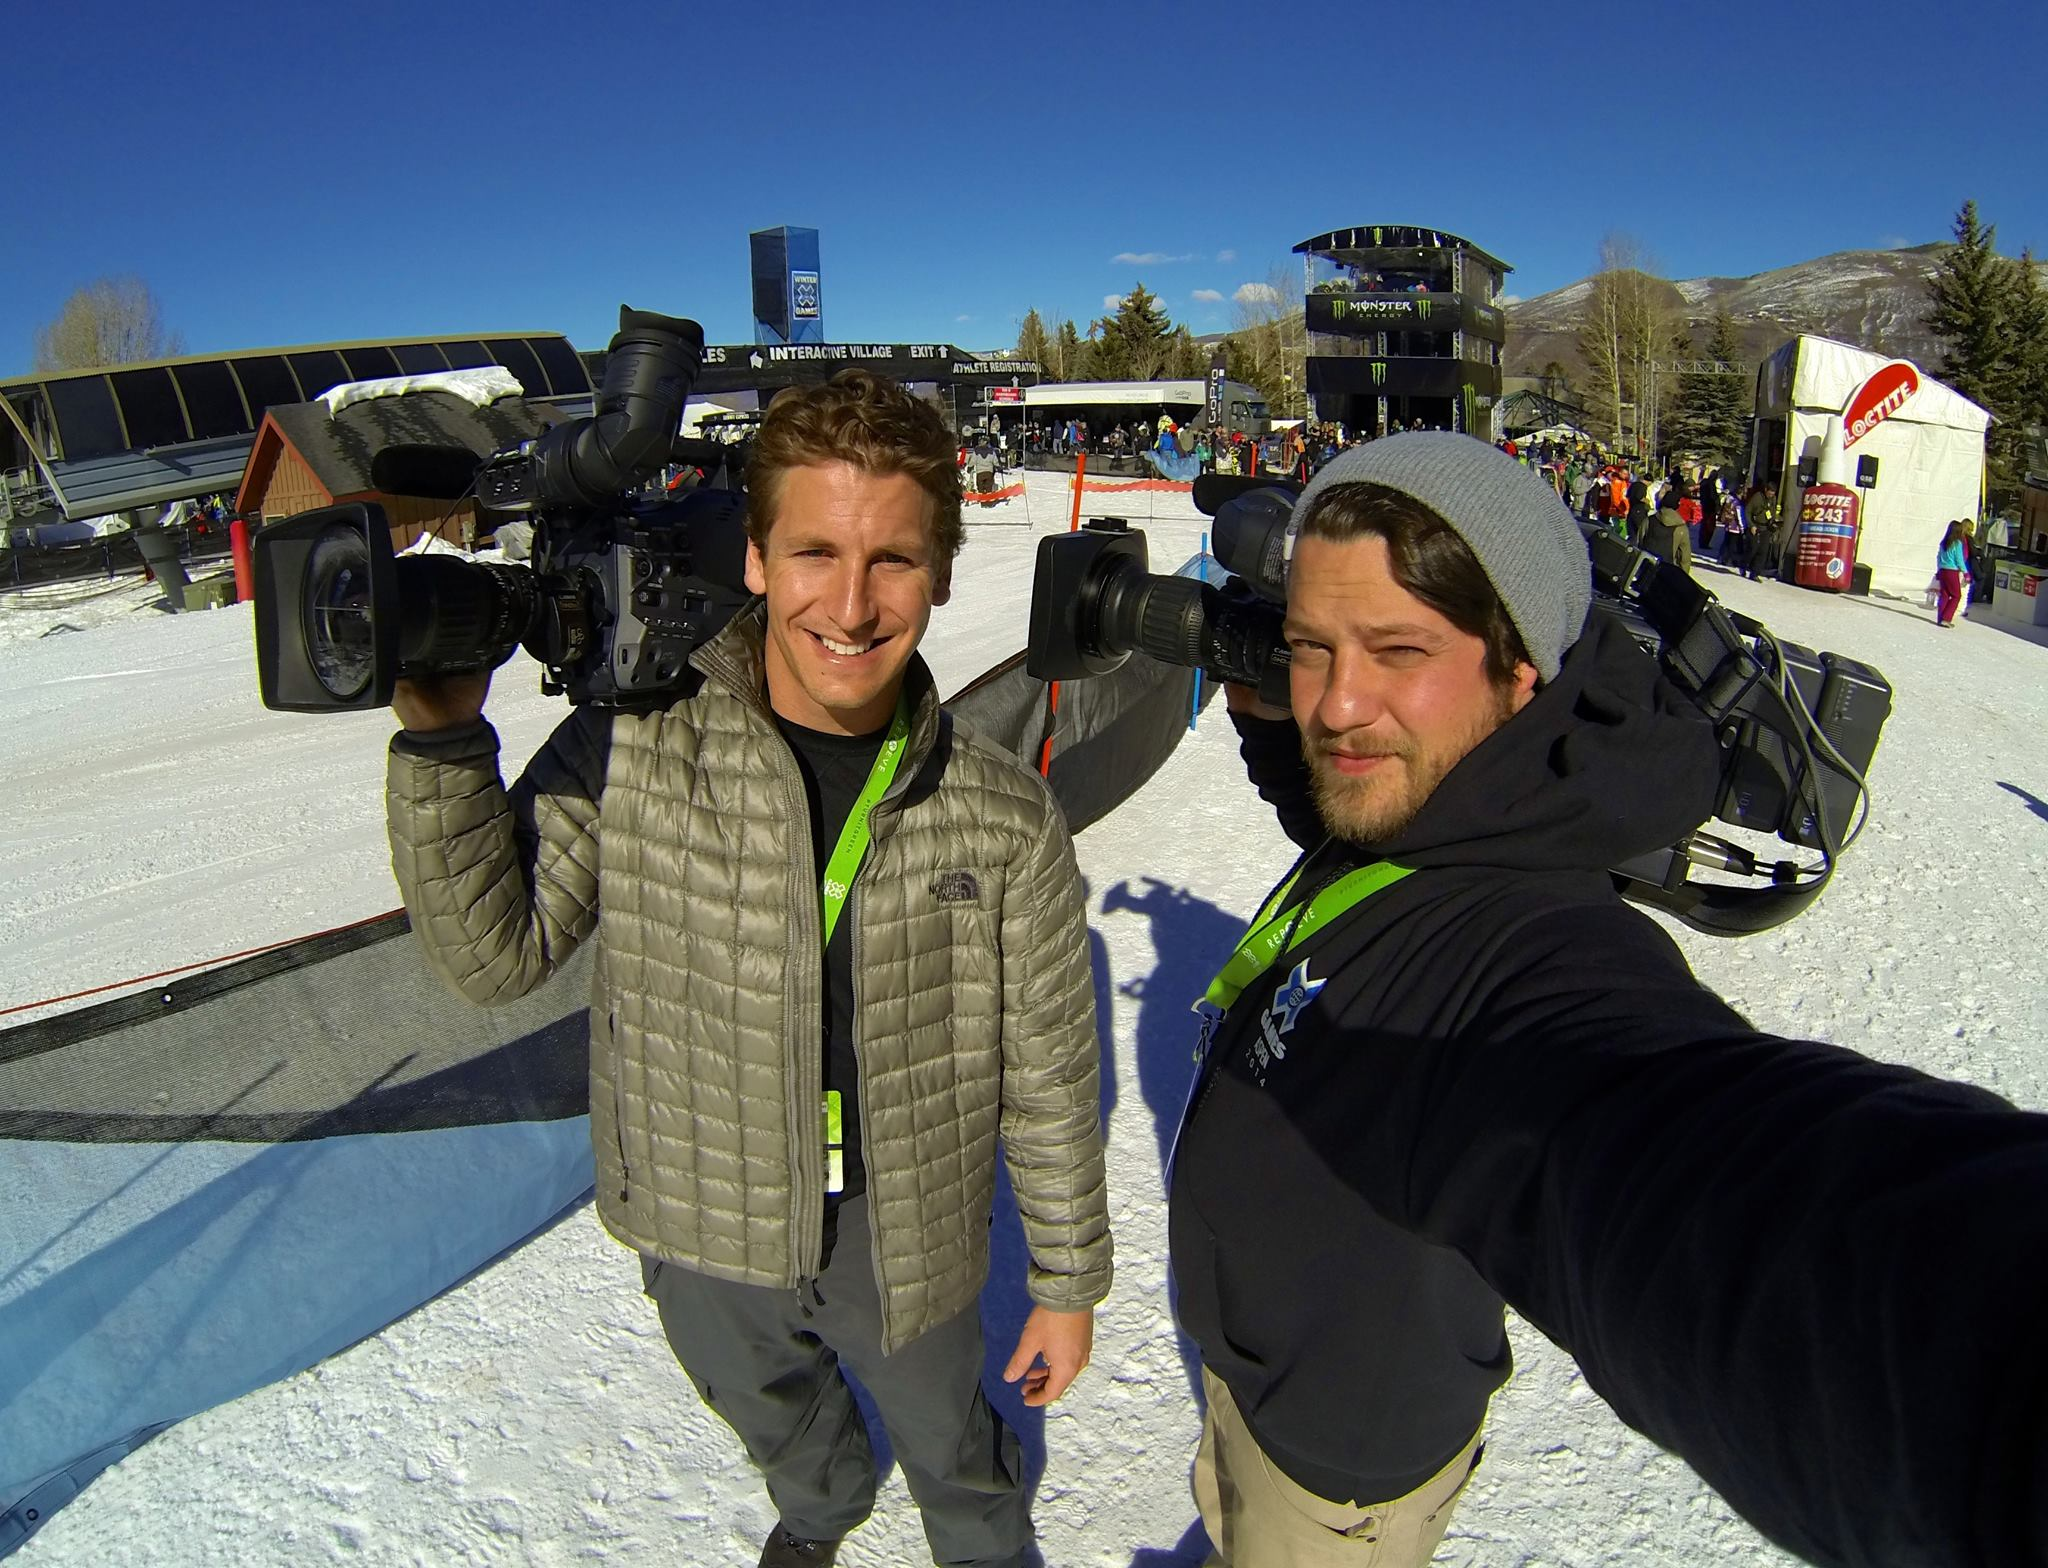 664288 10201453250880002 592005501 o LA and Chicago hit the slopes in Aspen for X Games   and they were stoked.